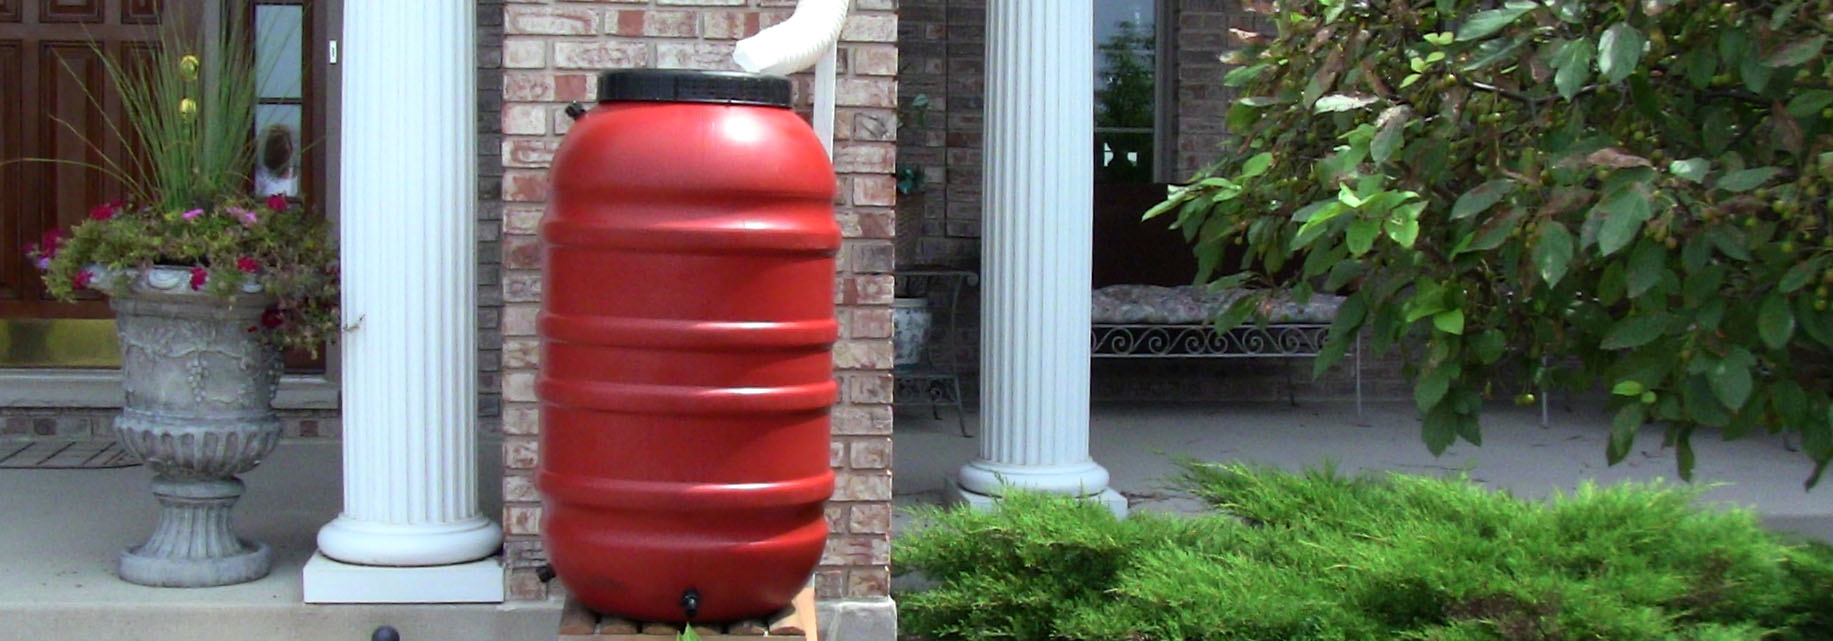 Discounted Rain Barrels Offered to Conserve Water